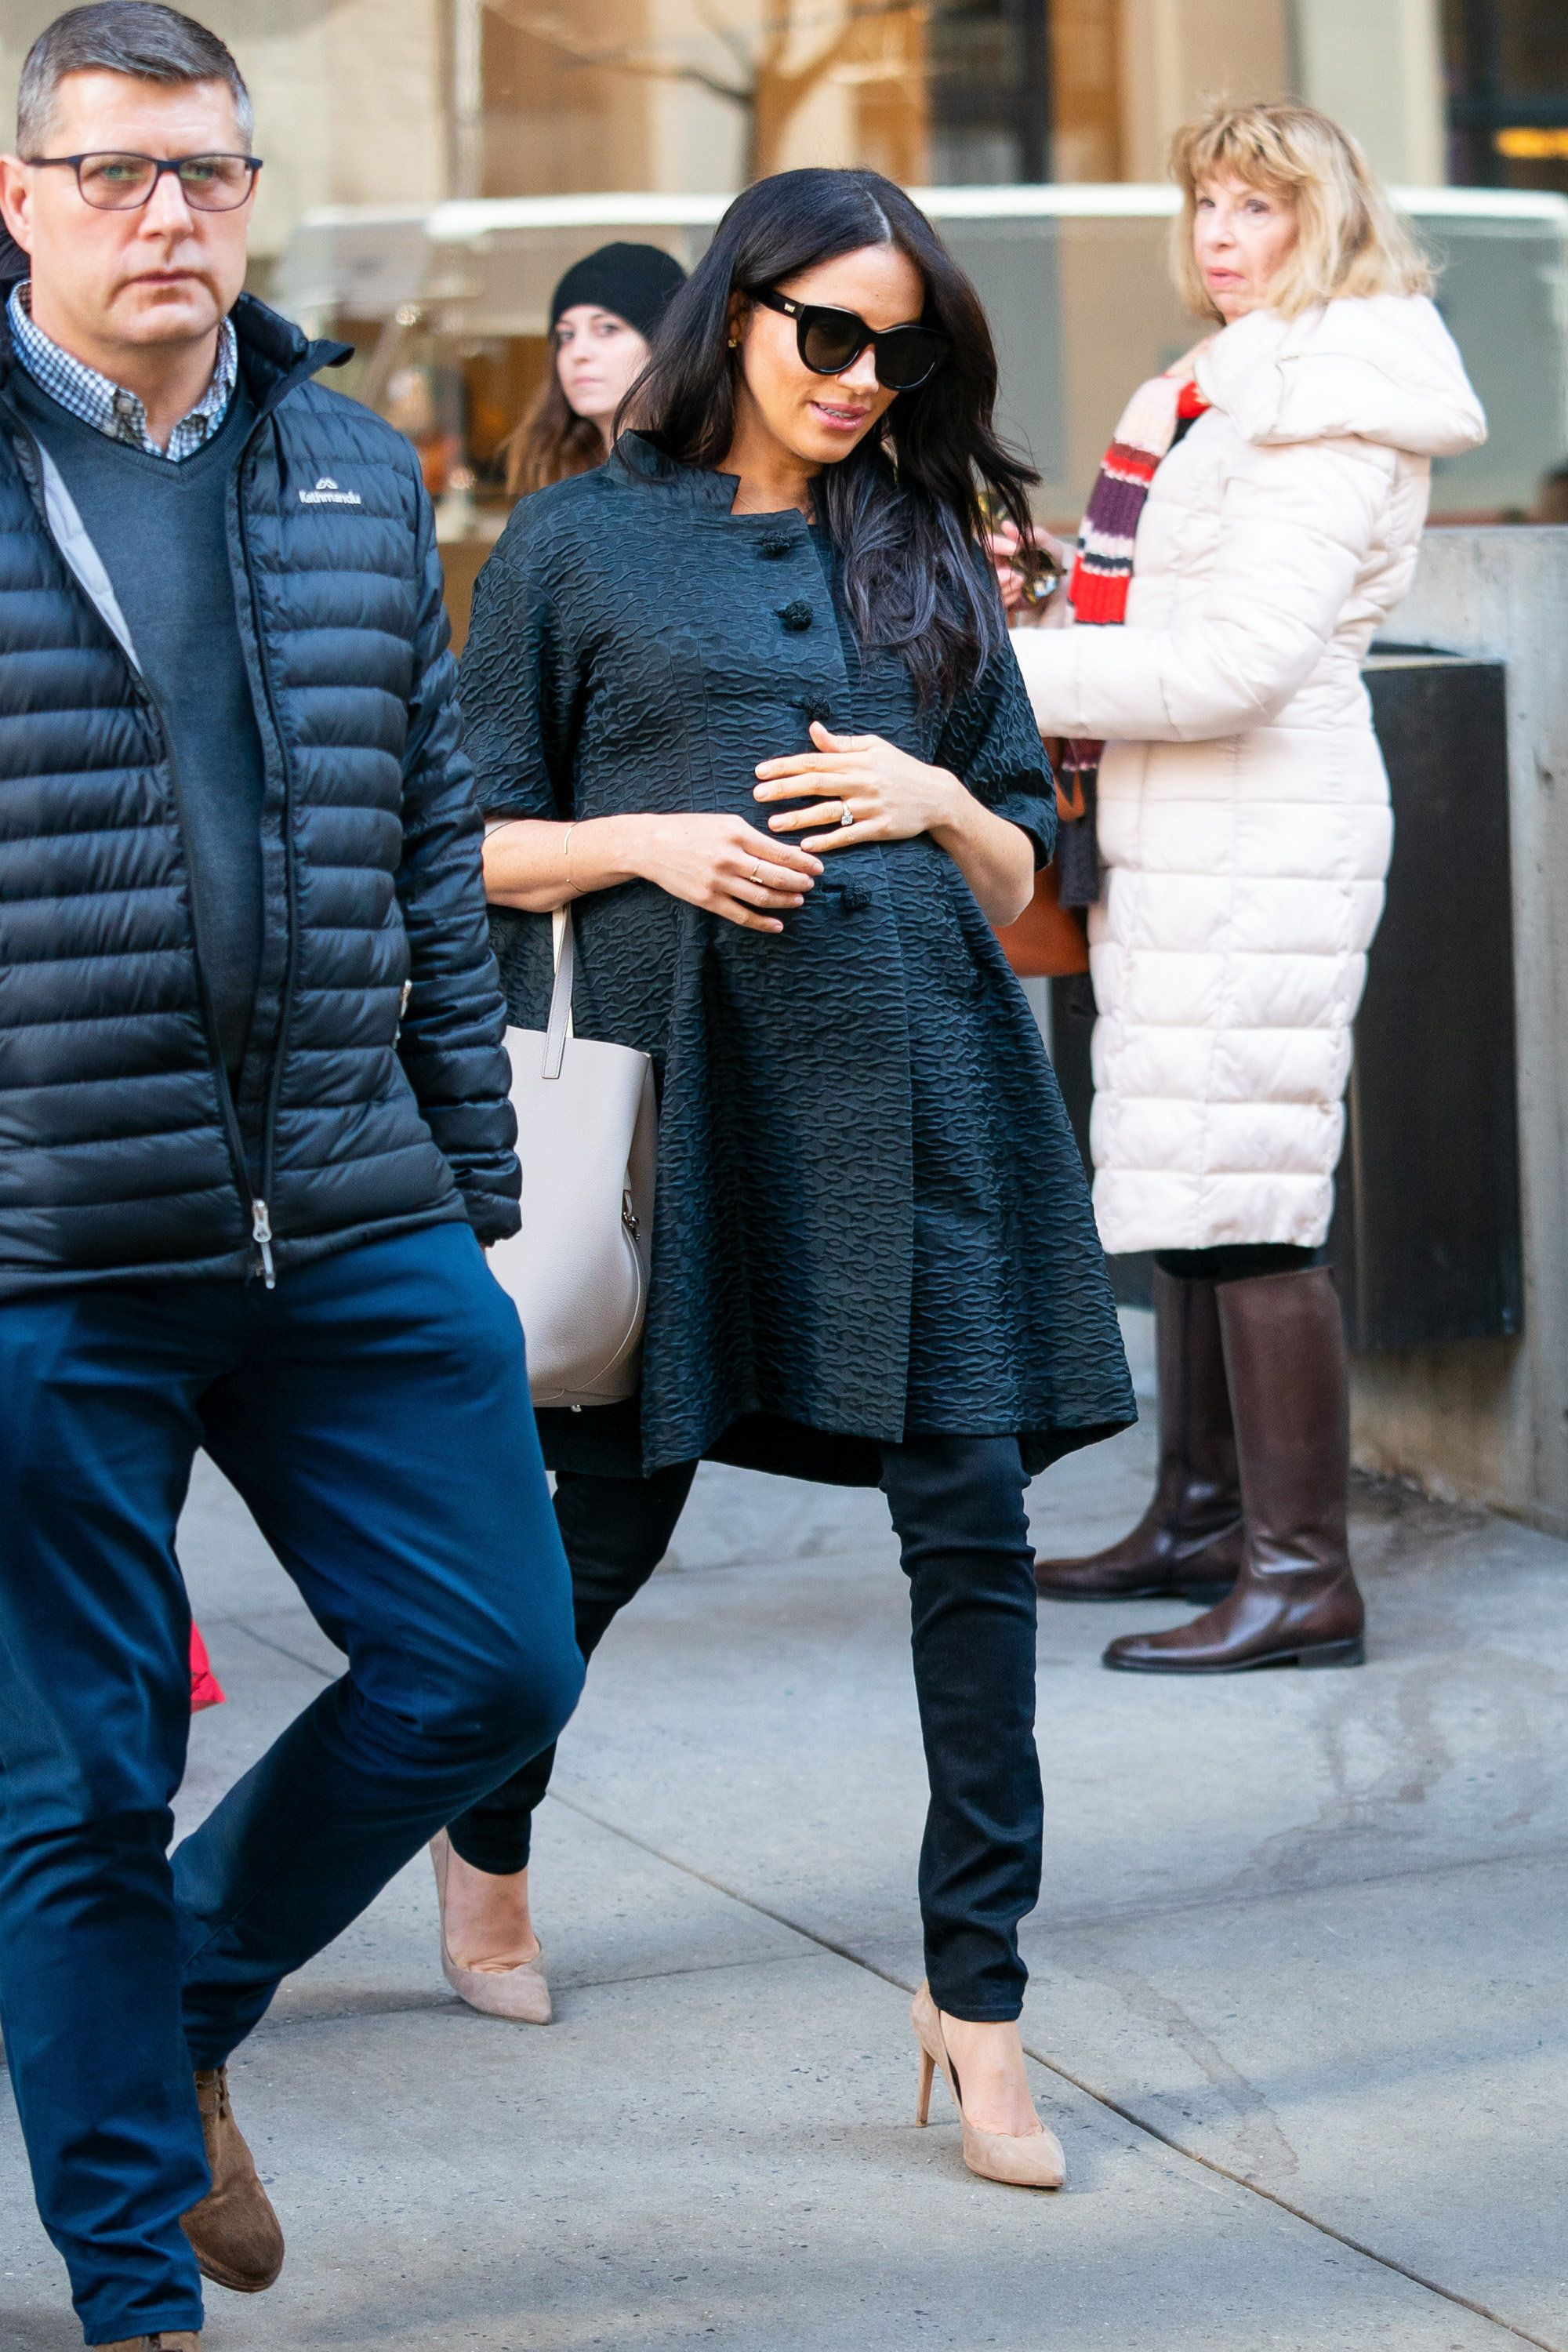 Meghan, Duchess of Sussex is seen in the Upper East Side on Feb. 19 in New York City.